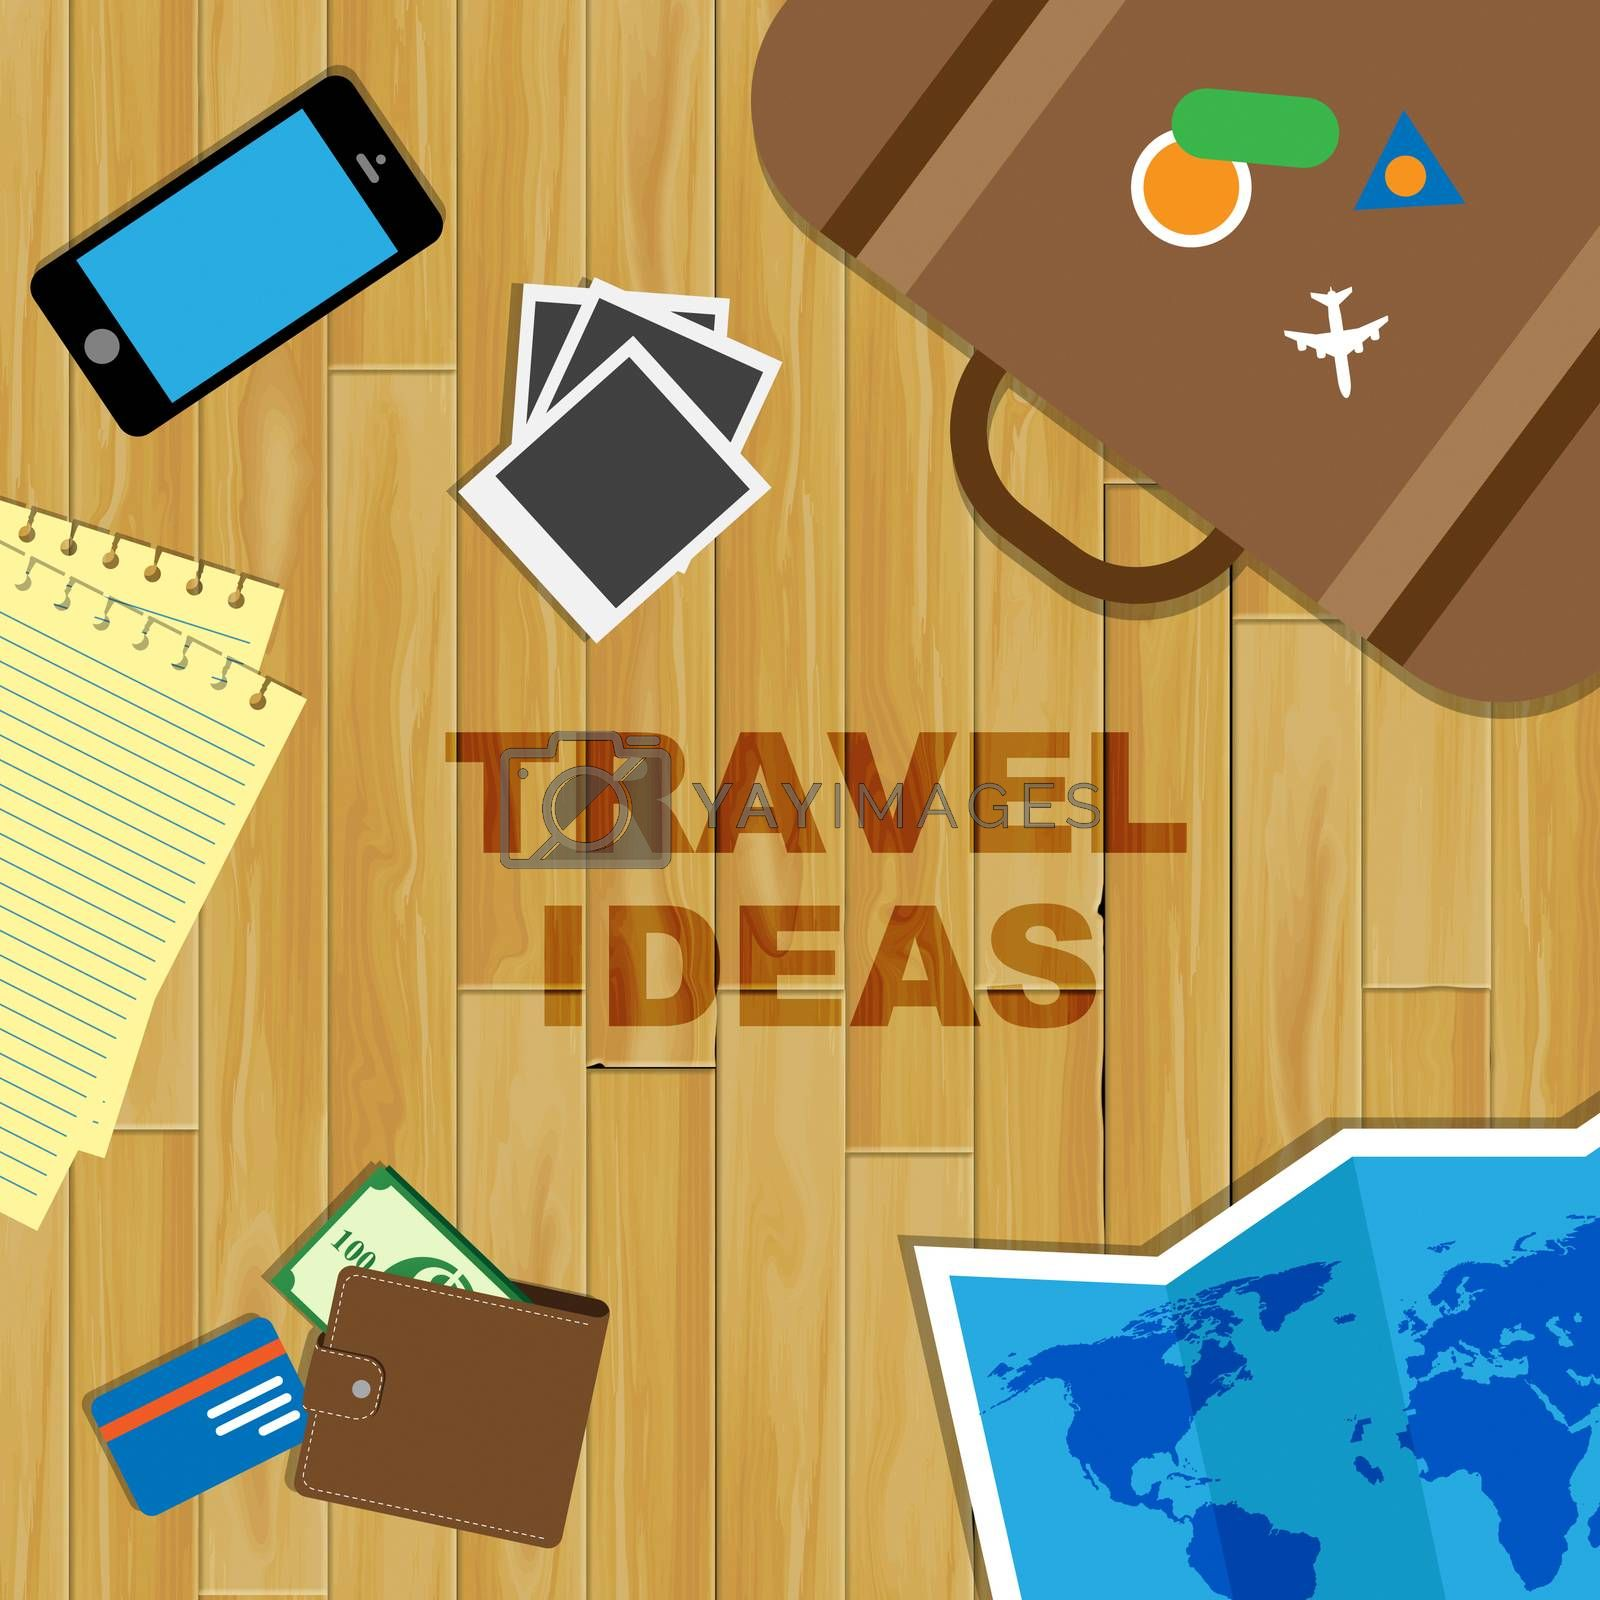 Travel Ideas Representing Journey Planning And Choices